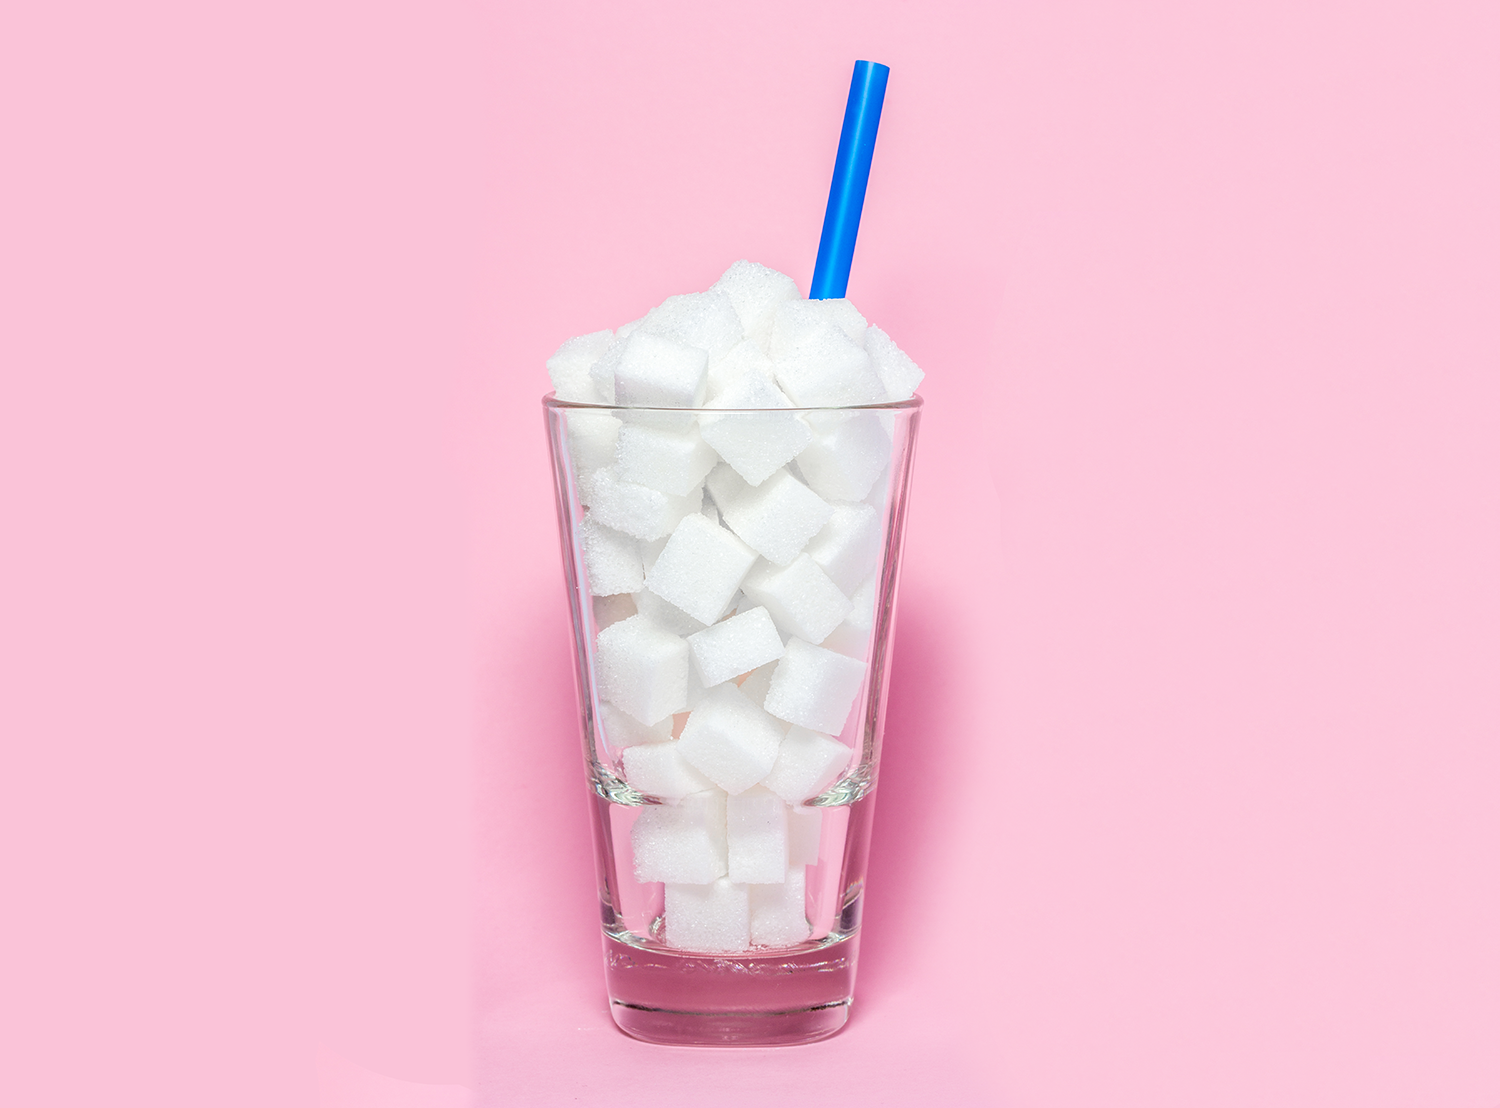 Are you having too much sugar in your diet?